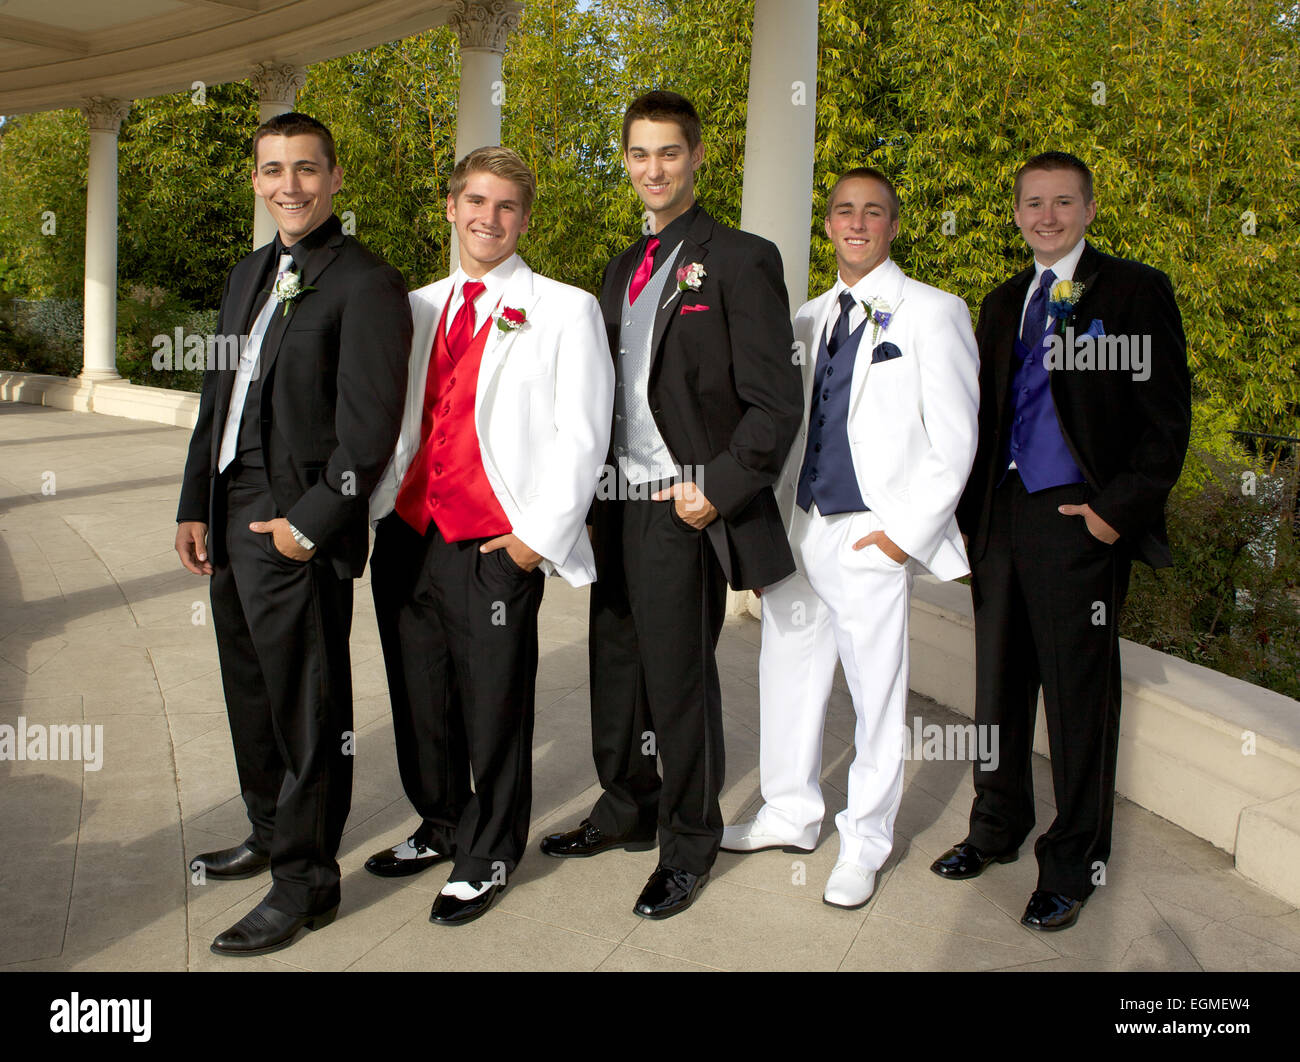 Five Handsome Teenage Boys in Tuxedos Posing for a Prom Photo Outside - Stock Image